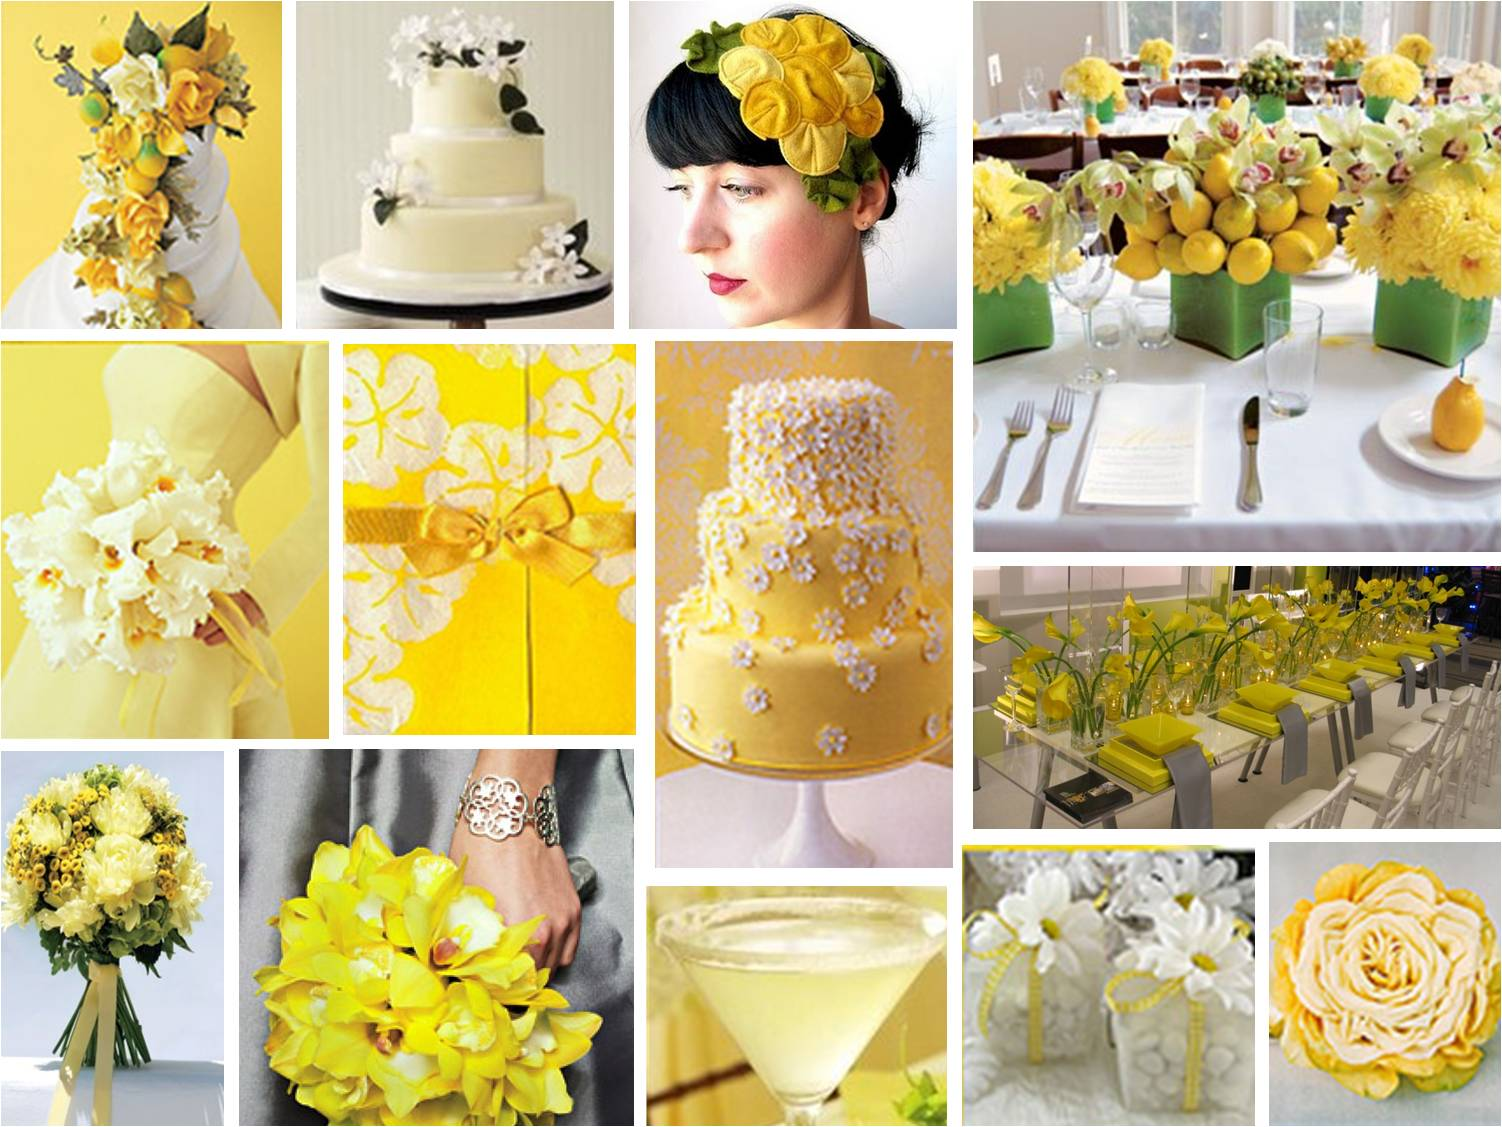 Remarkable Yellow Wedding Theme 1502 x 1127 · 211 kB · jpeg